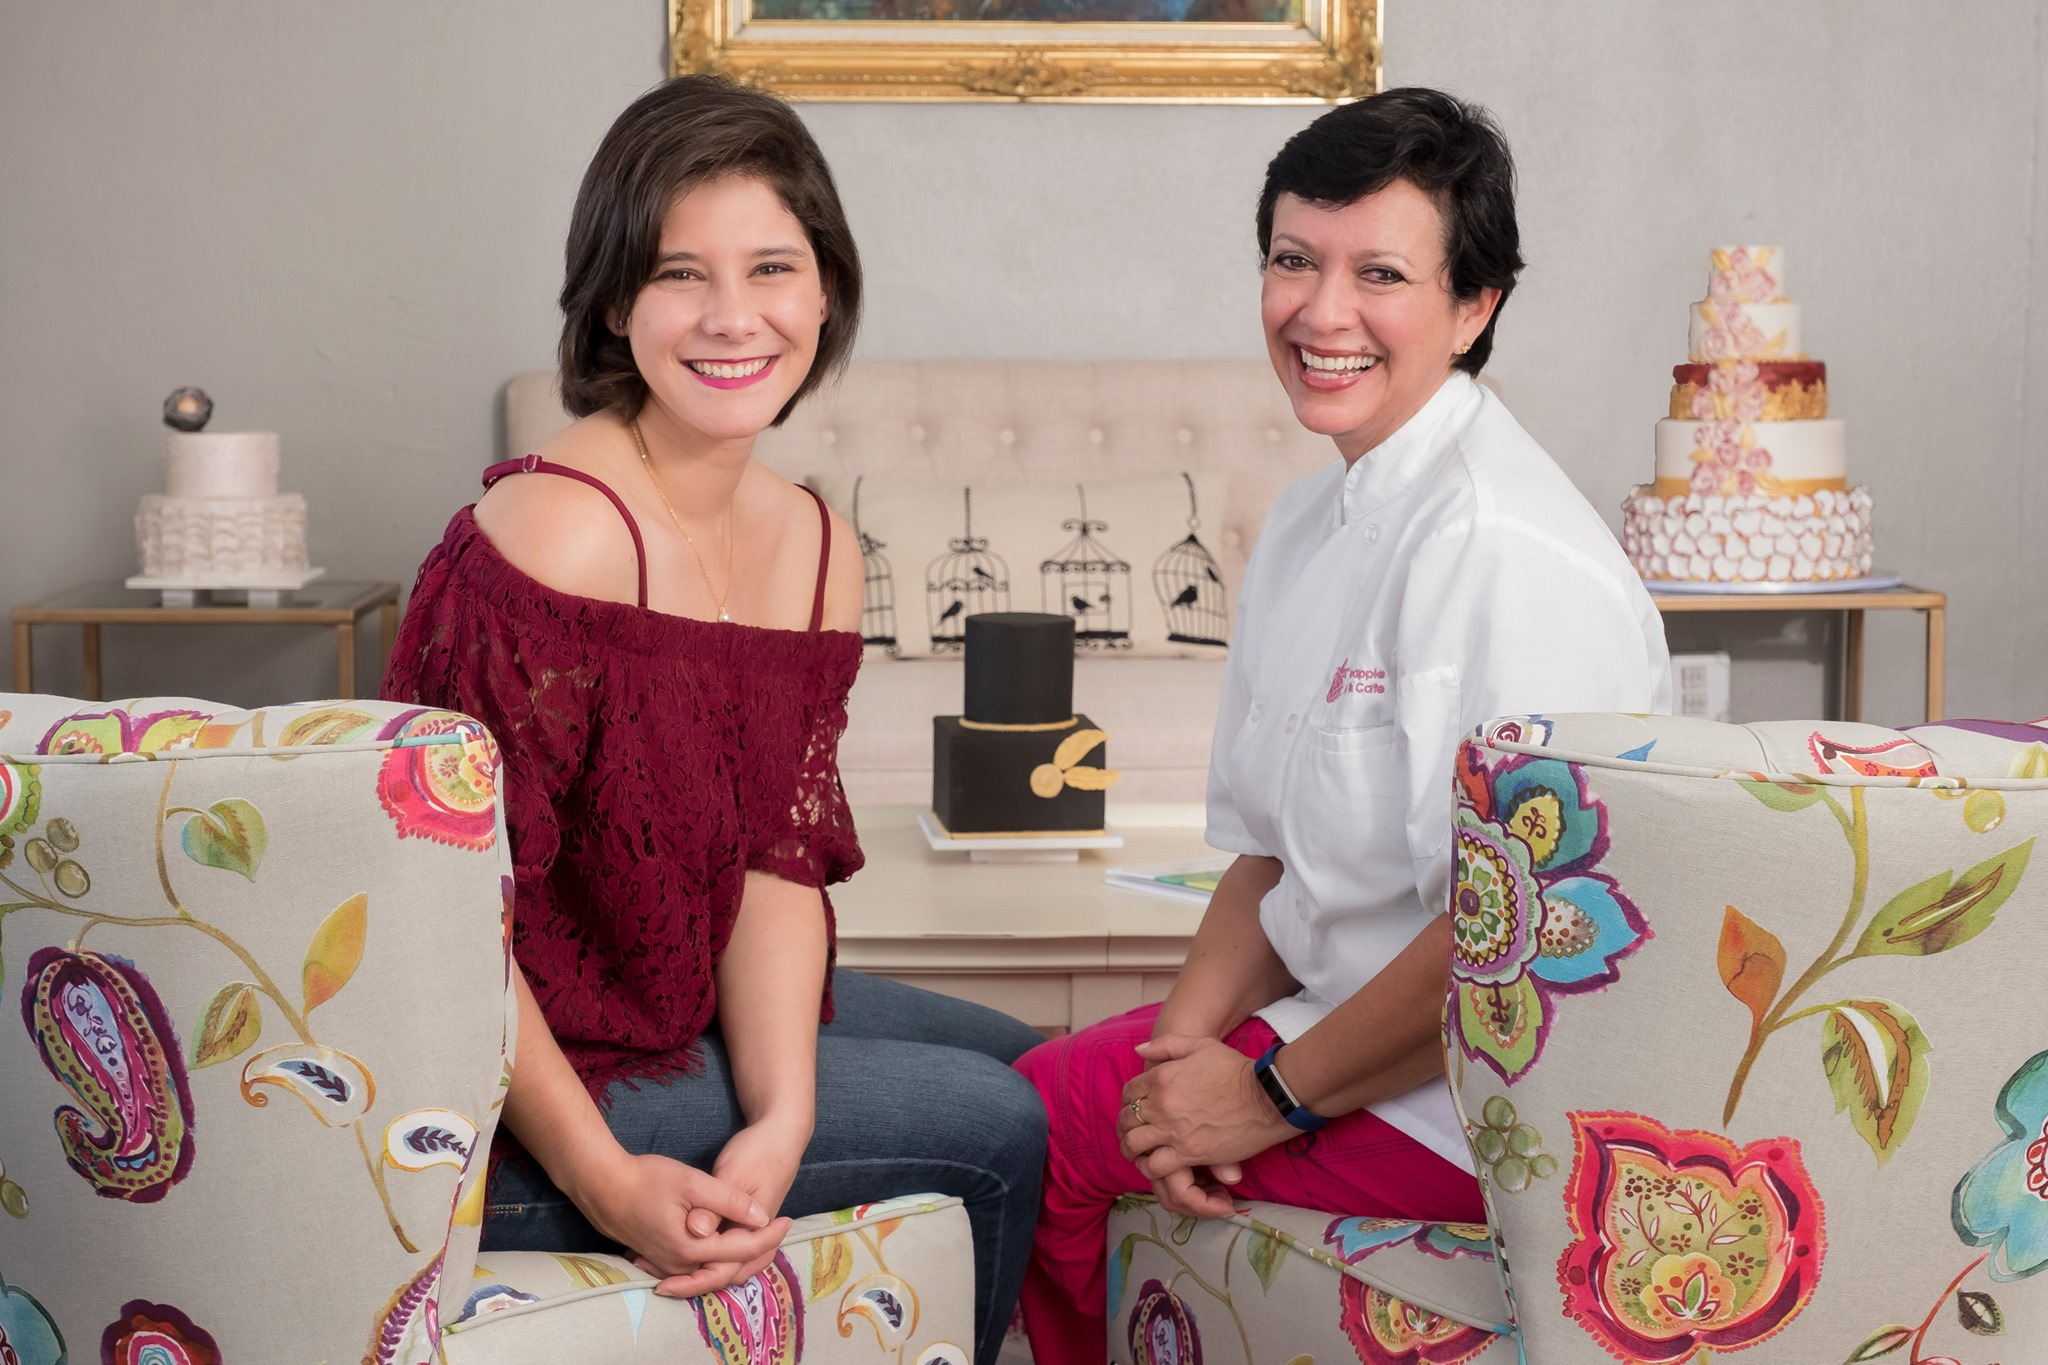 Friendor Friday: Pink Pineapple Cakes - Pink Pineapple Cakes was founded in 2011 by this spectacular & driven mother/daughter duo! Rebeca & Aura opened the bakery in hopes of uniting families & bringing positivity into everyone's lives. This year, they were featured on The Food Network Show, Winner Cake All & we are so thrilled they agreed to an interview! Rebeca answered all of our burning questions for us! Also follow them on Instagram and check out their website! (They do online ordering now!)